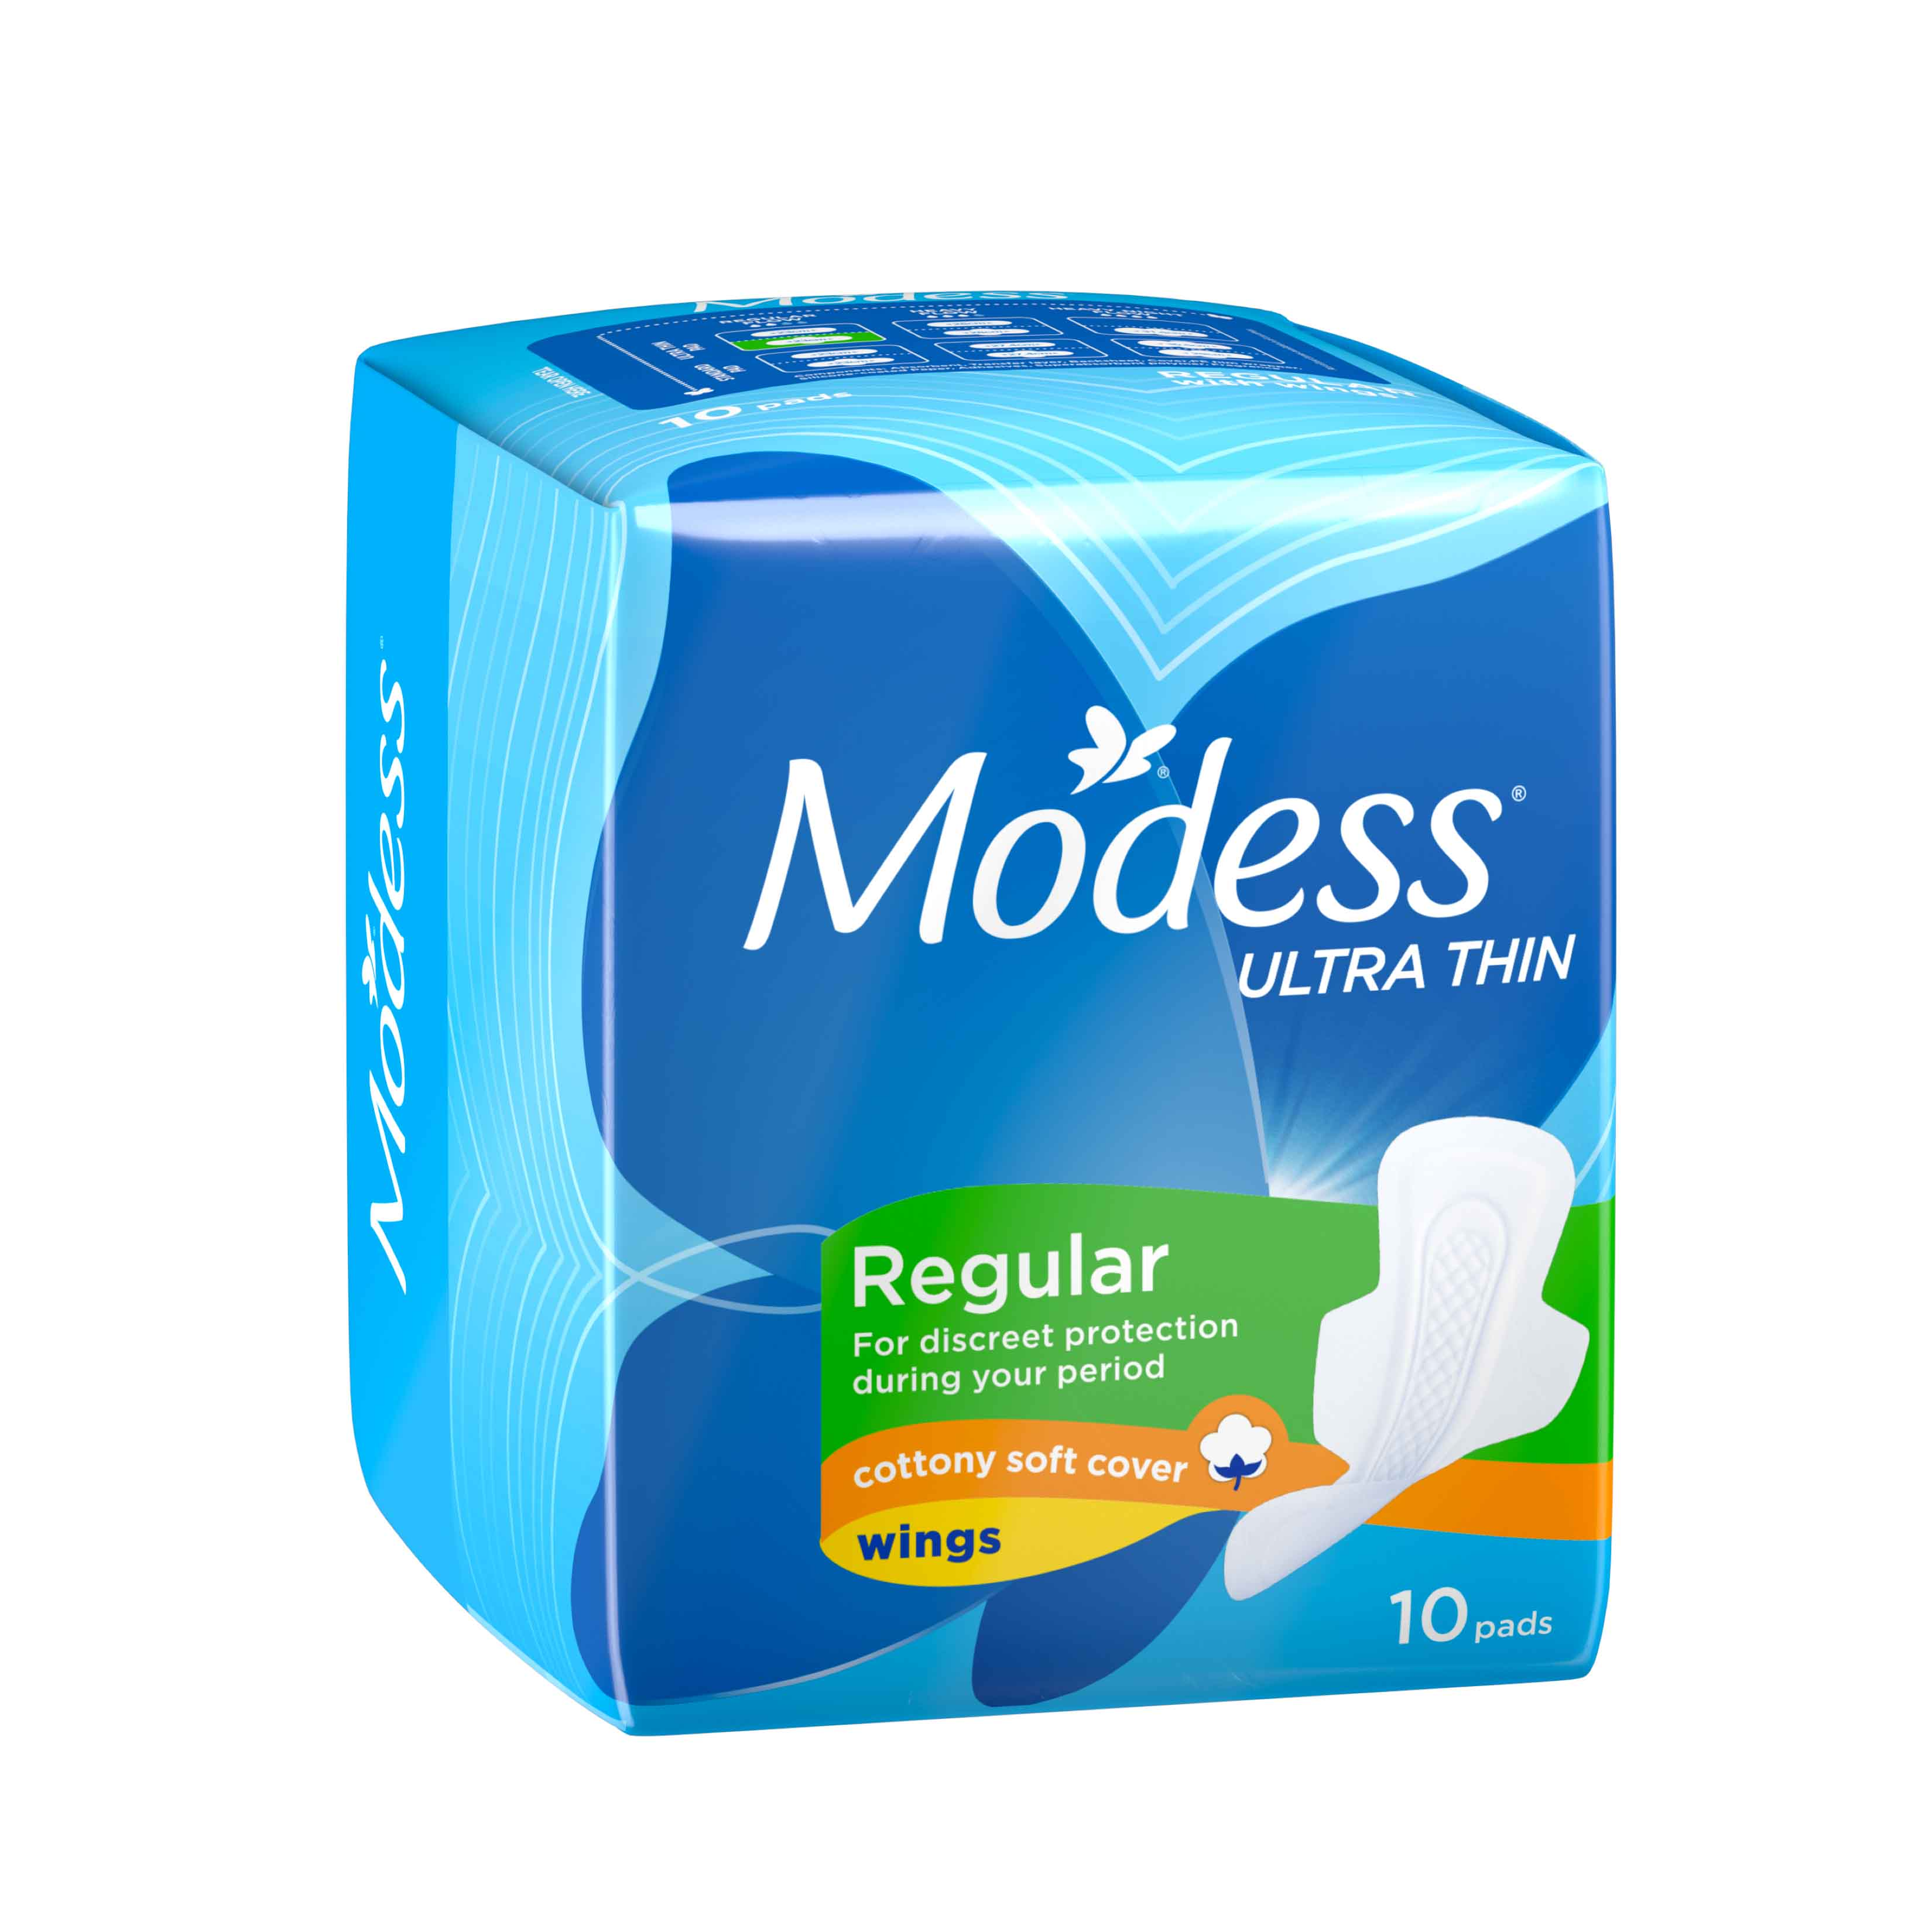 MODESS COTTONY SOFT ULTRA THIN REGULAR WITH WINGS (QTY:10)